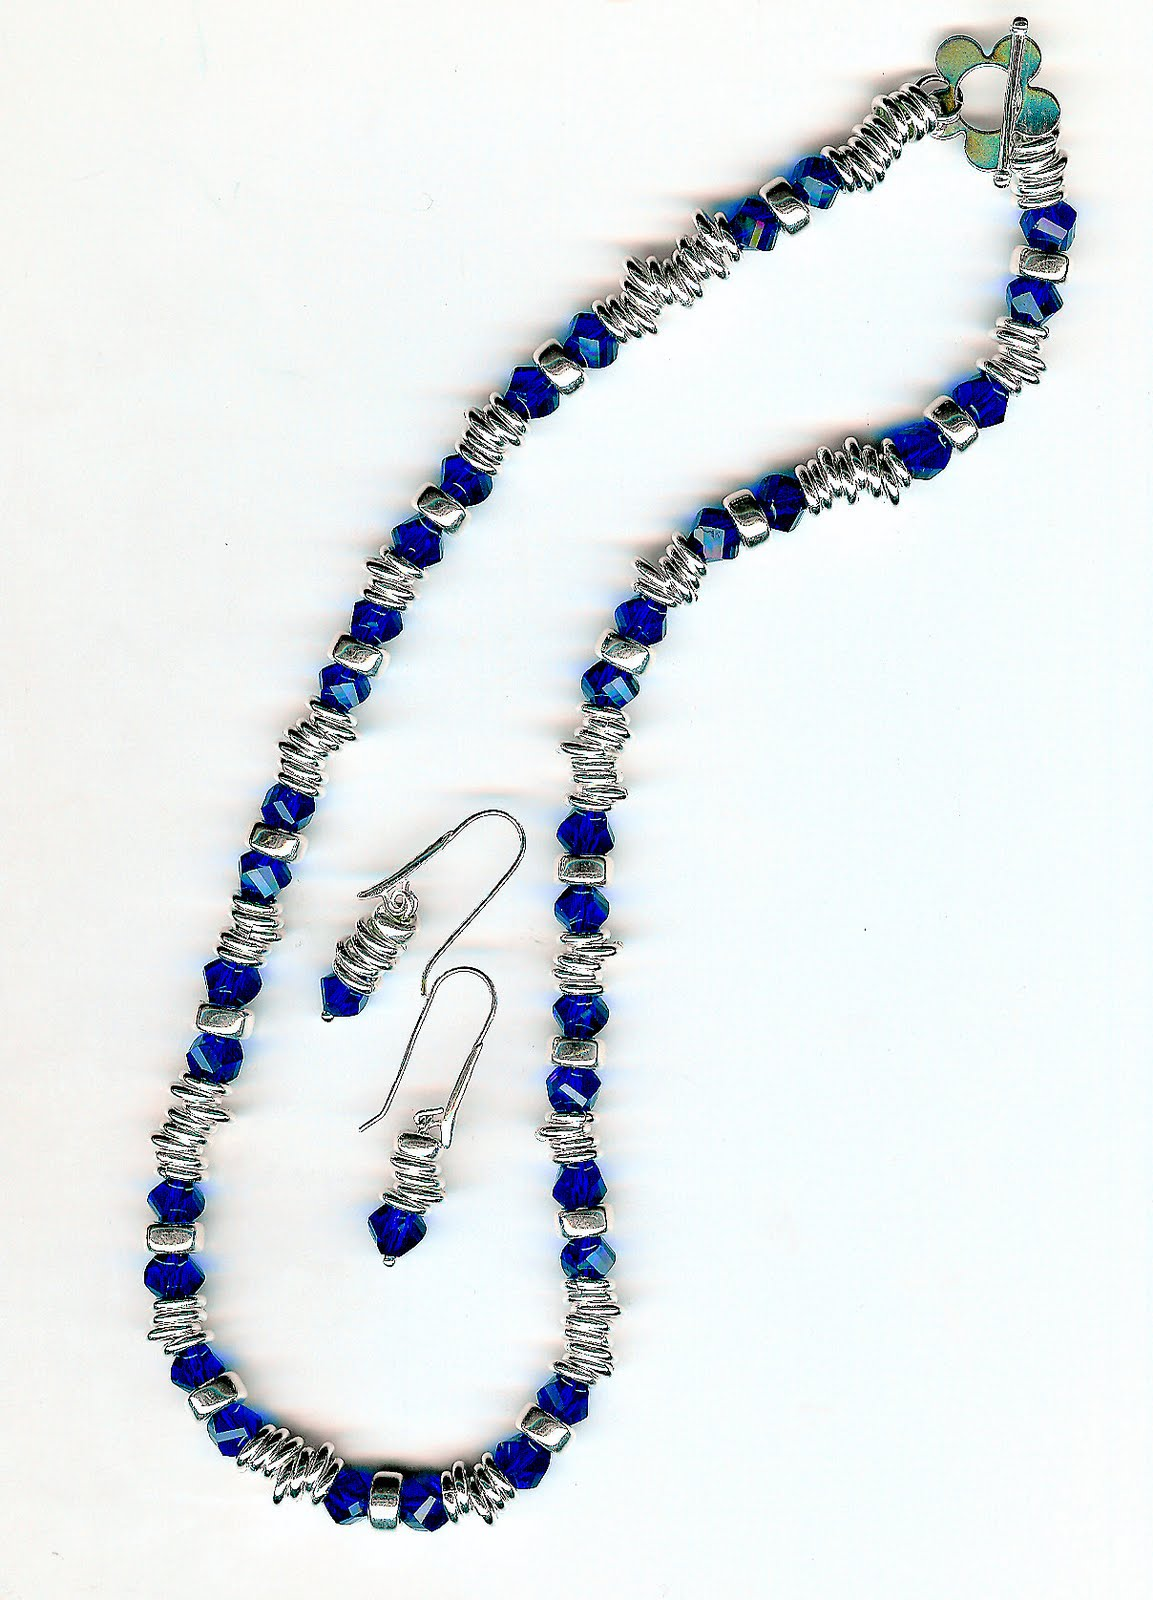 174. Cobalt Crystals with Sterling Silver + Earrings